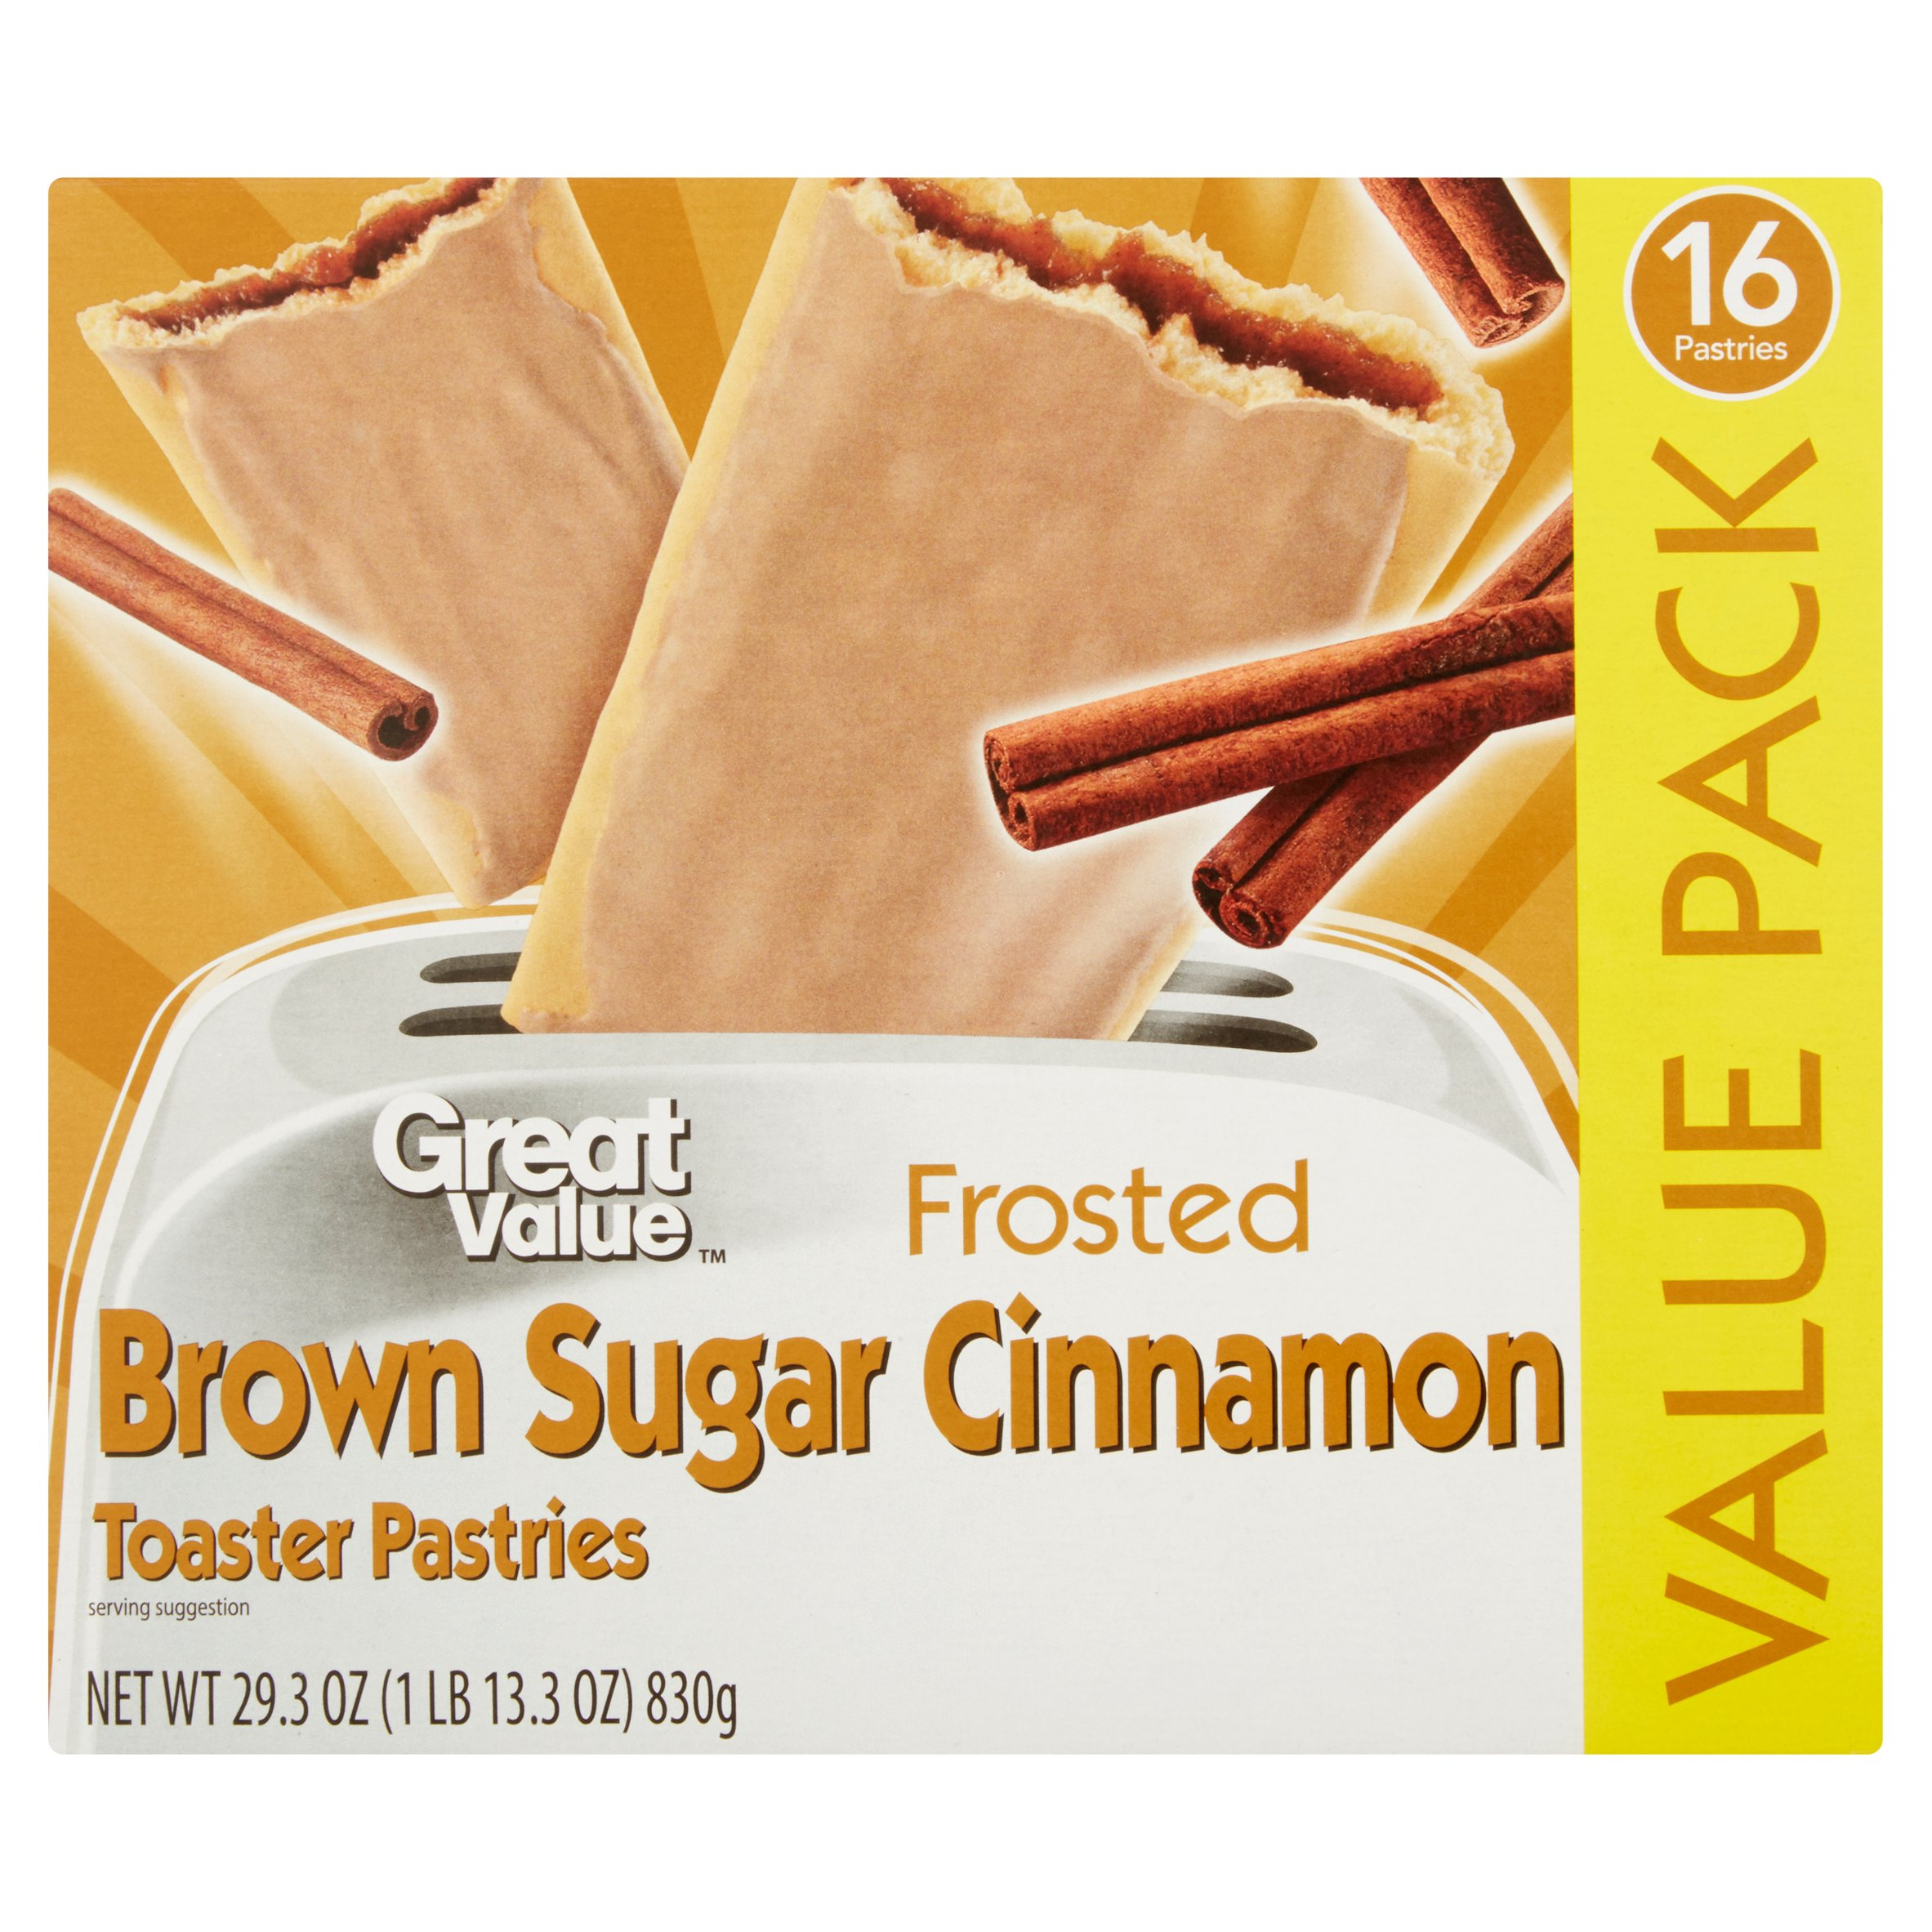 Great Value Frosted Toaster Pastries, Brown Sugar Cinnamon, 16 Count by Wal-Mart Stores, Inc.